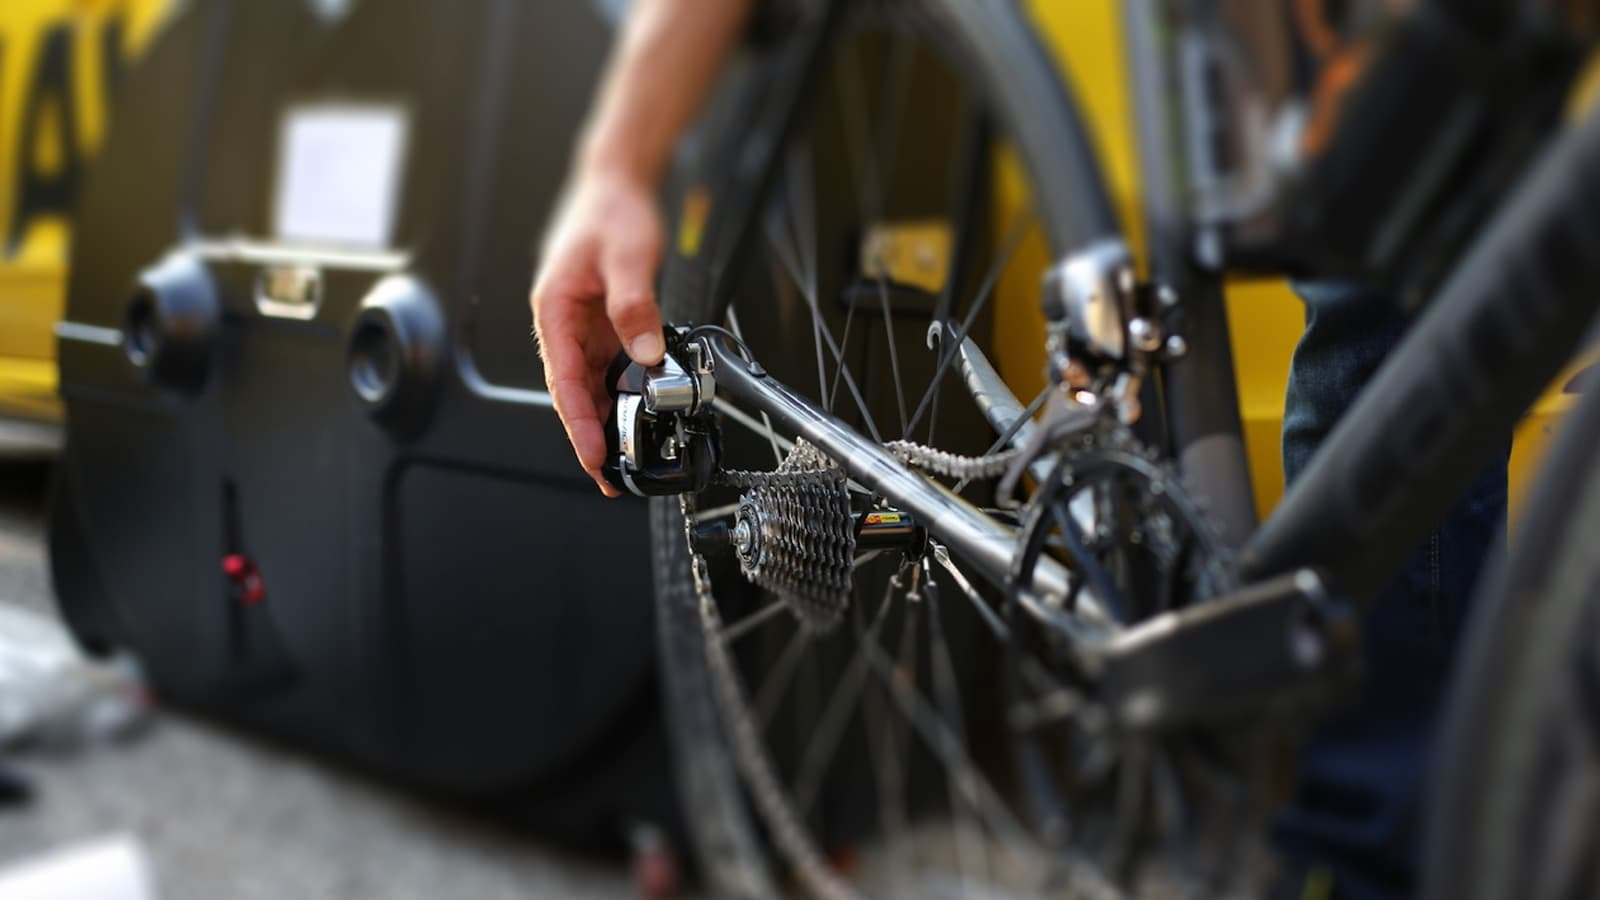 5 of the best bike boxes and bags